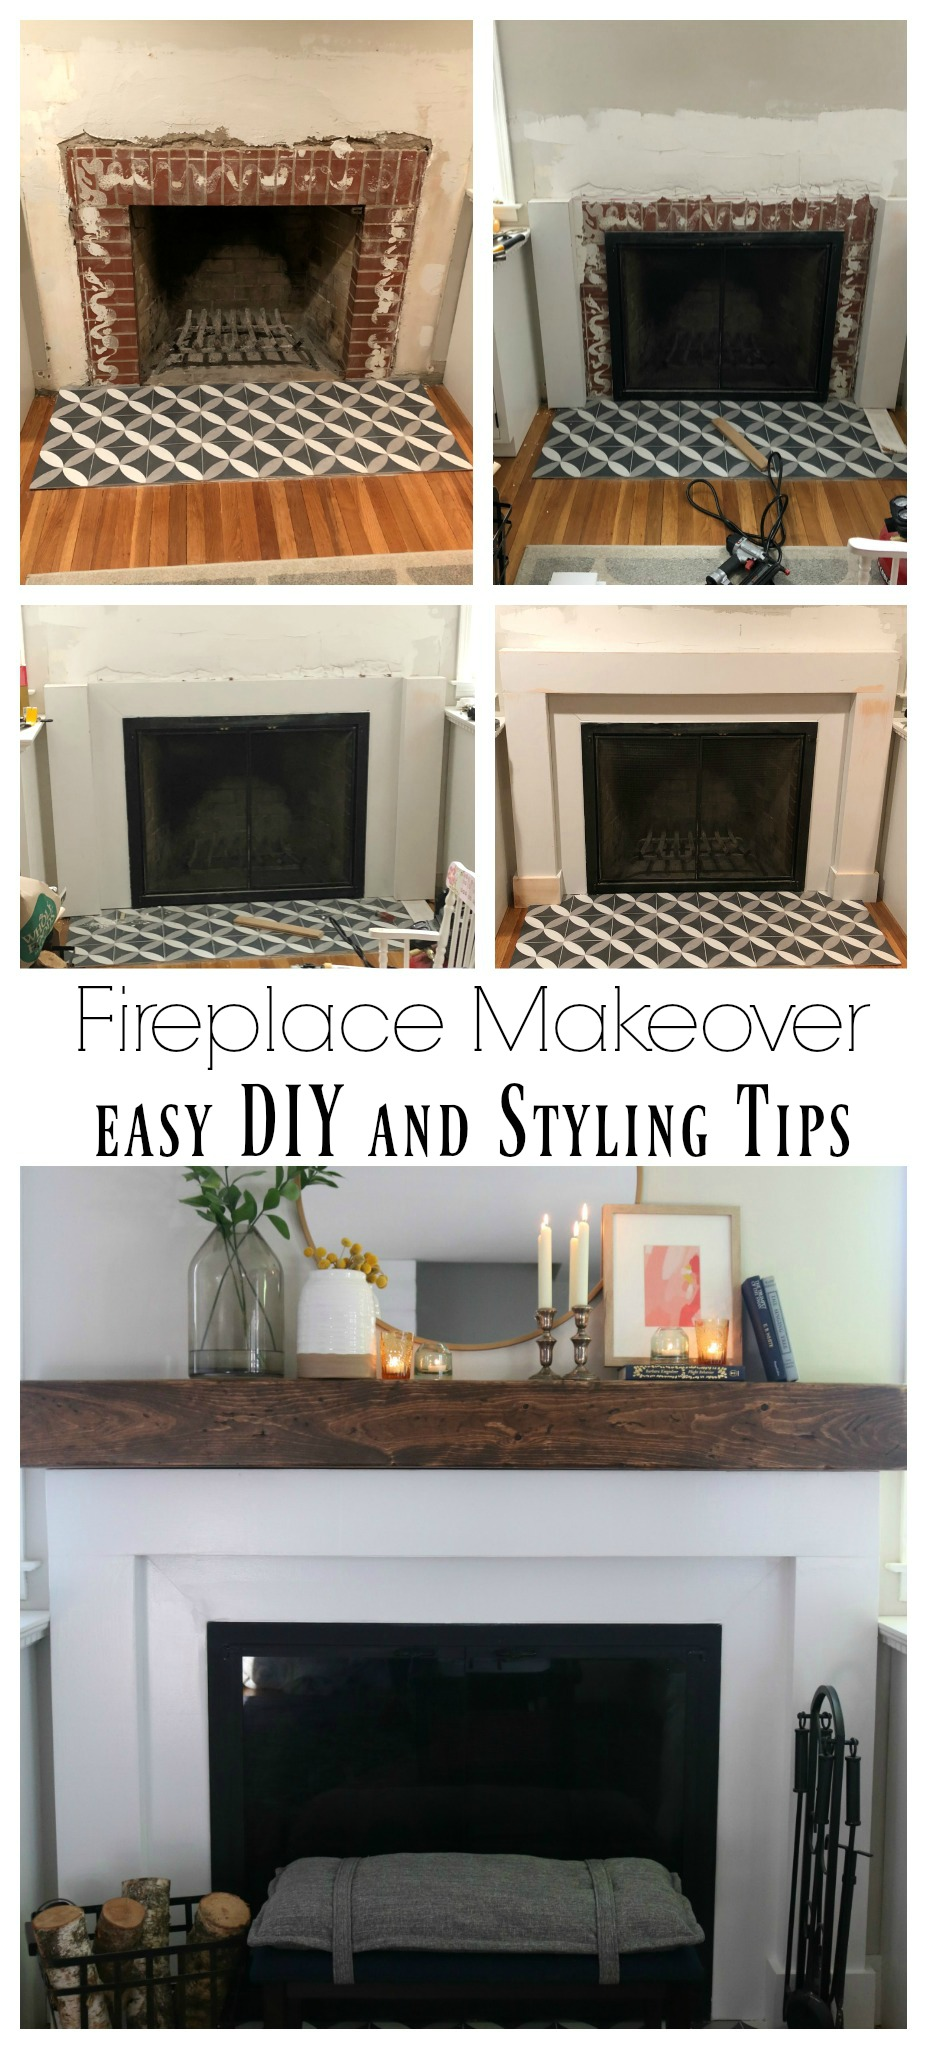 Fireplace Makeover- DIY and Target Decor